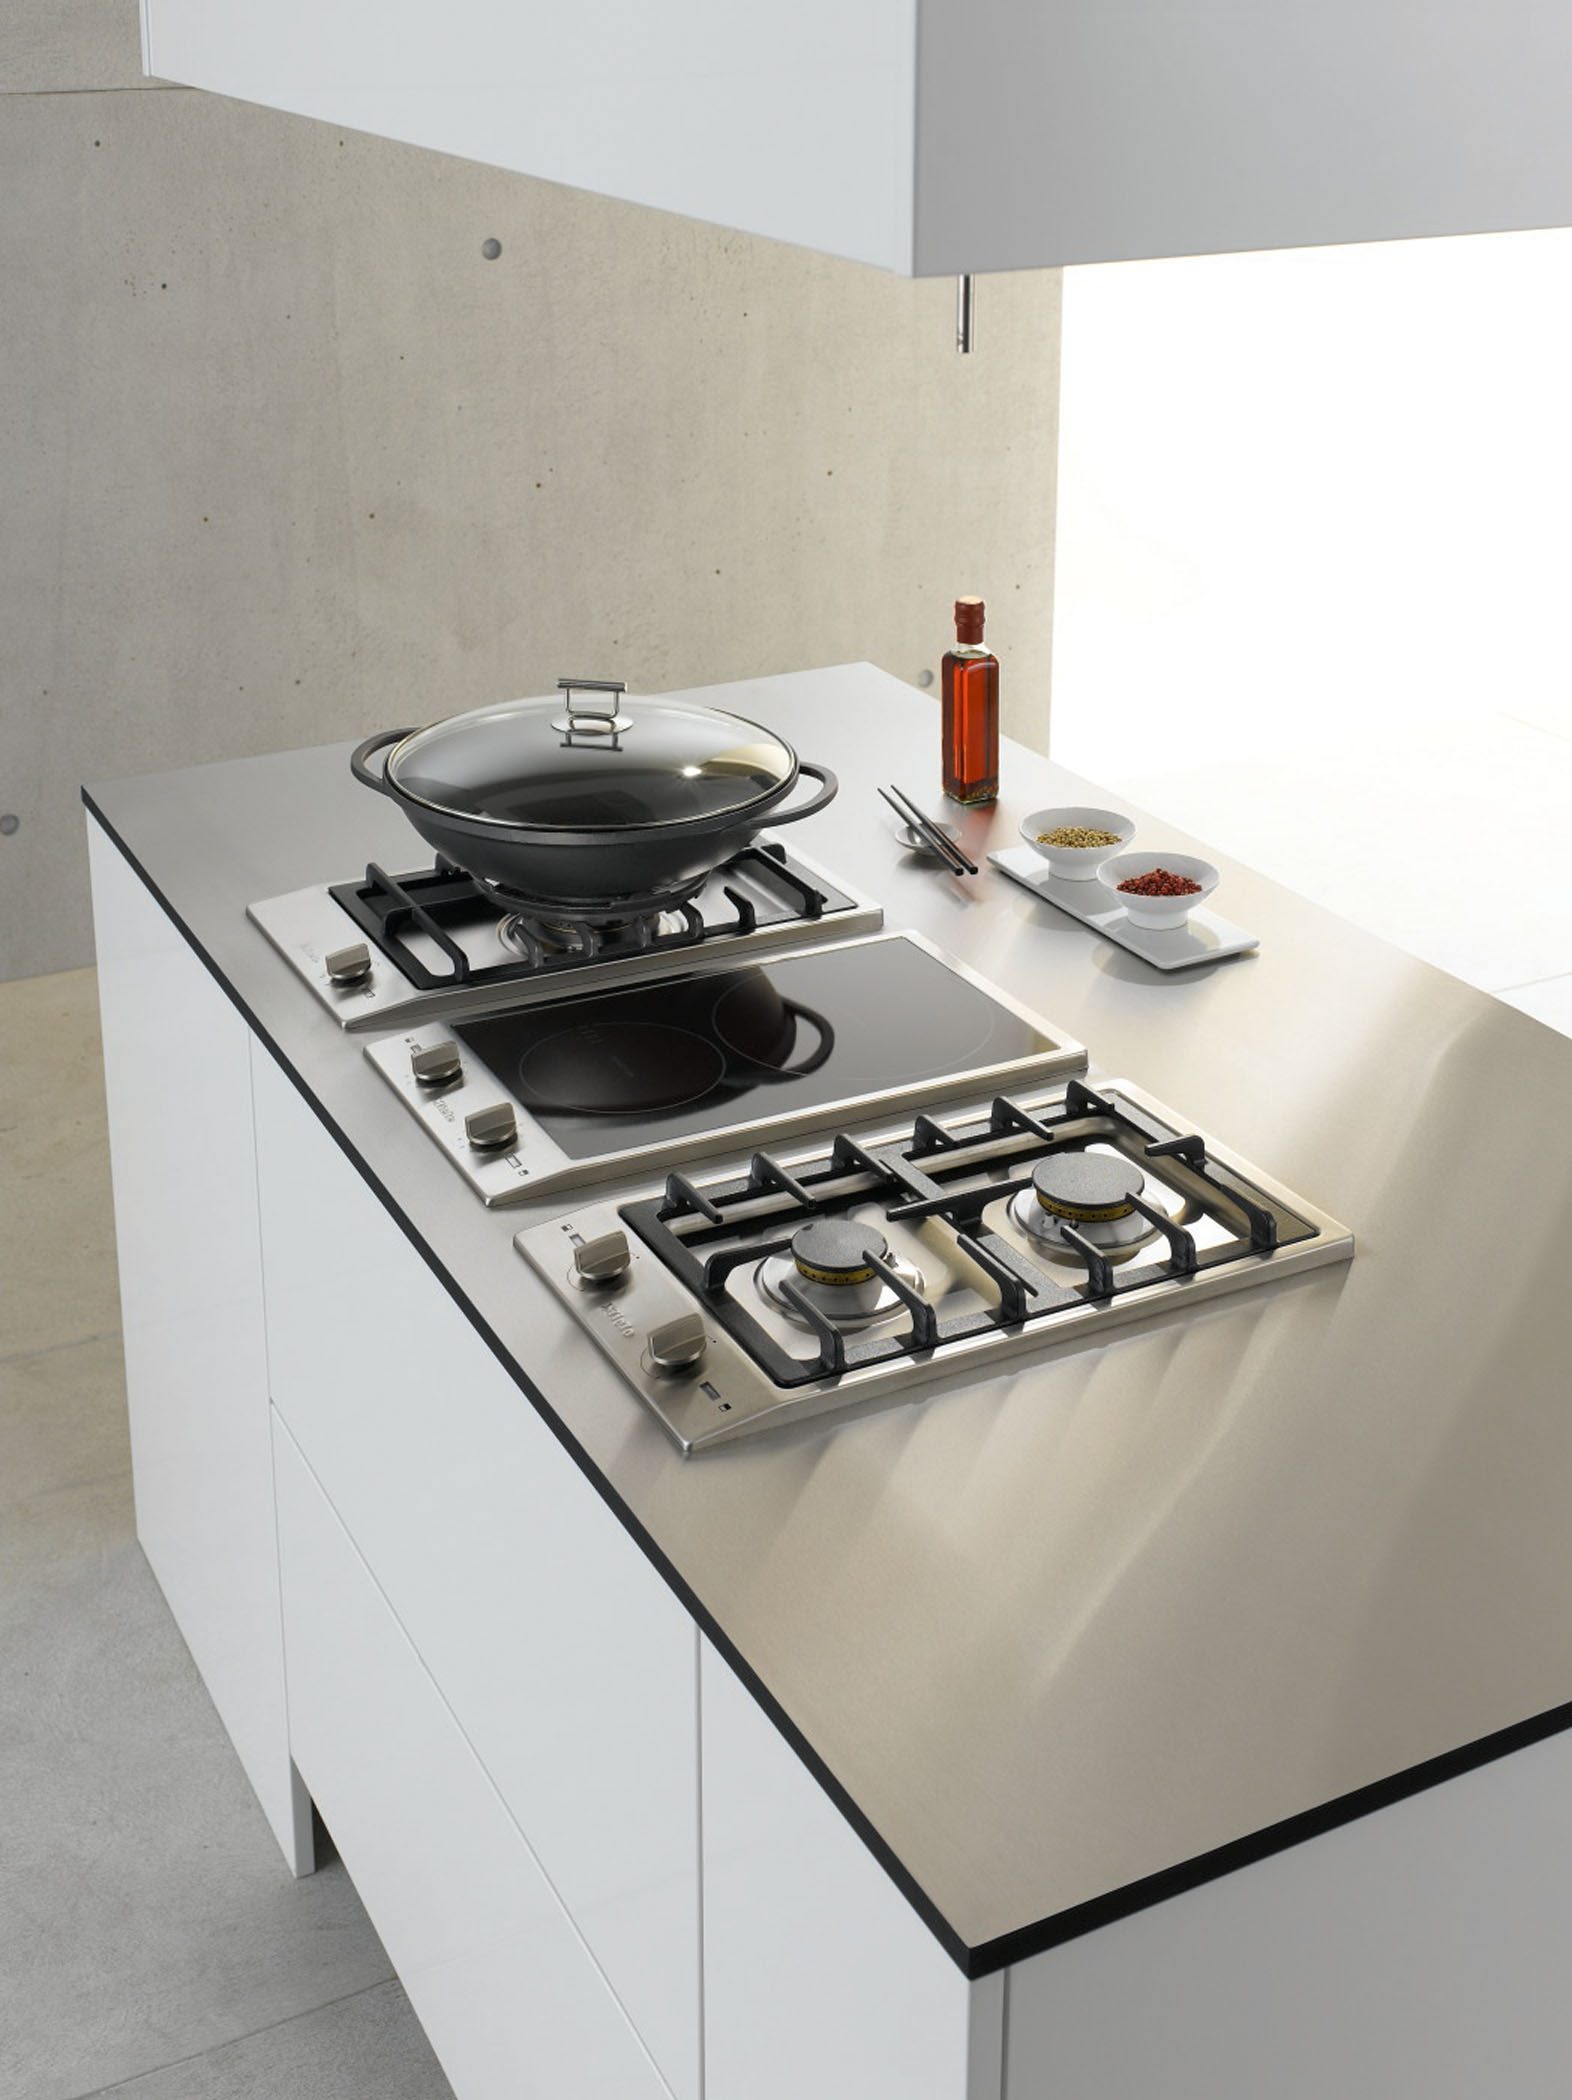 Uncategorized Miele Kitchen Appliances miele combiset perfect cooktop for small kitchens kellys kitchens